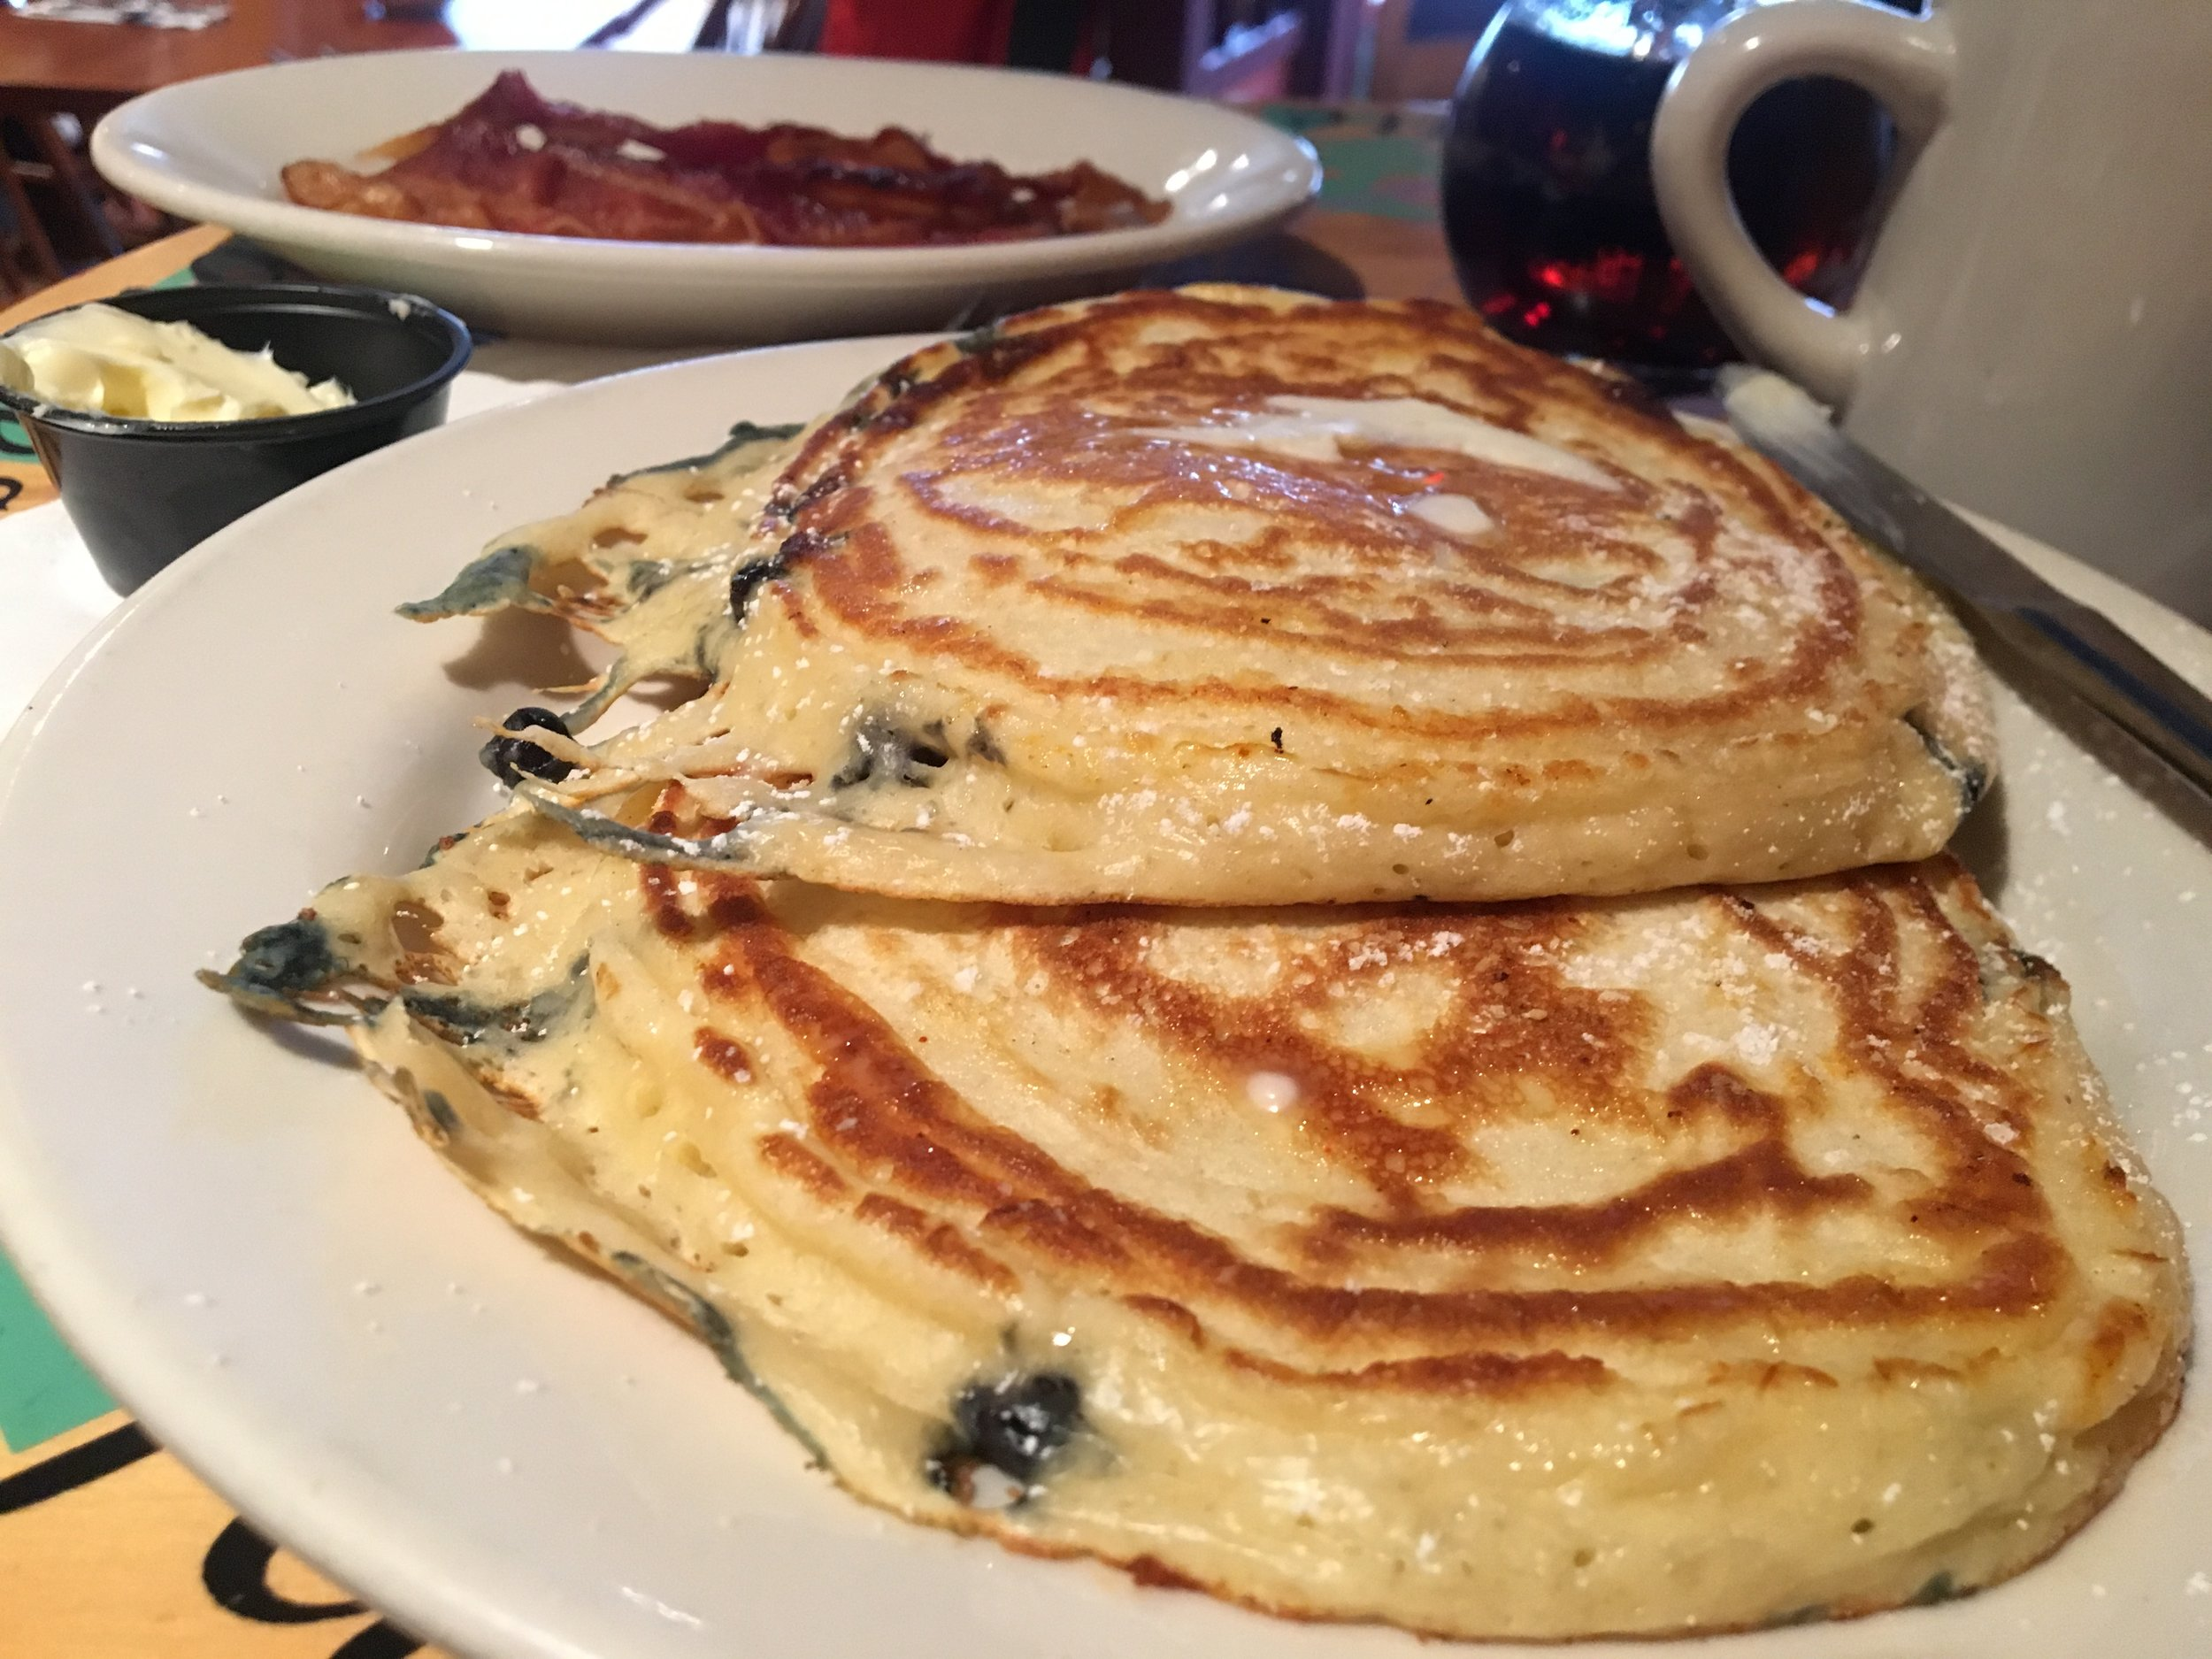 And since we are keeping with a blue theme, one must devour some blueberry pancakes while in Maine. I highly recommend  Sips  in Southwest Harbor. A delightful restaurant with great coffee and lovely atmosphere.